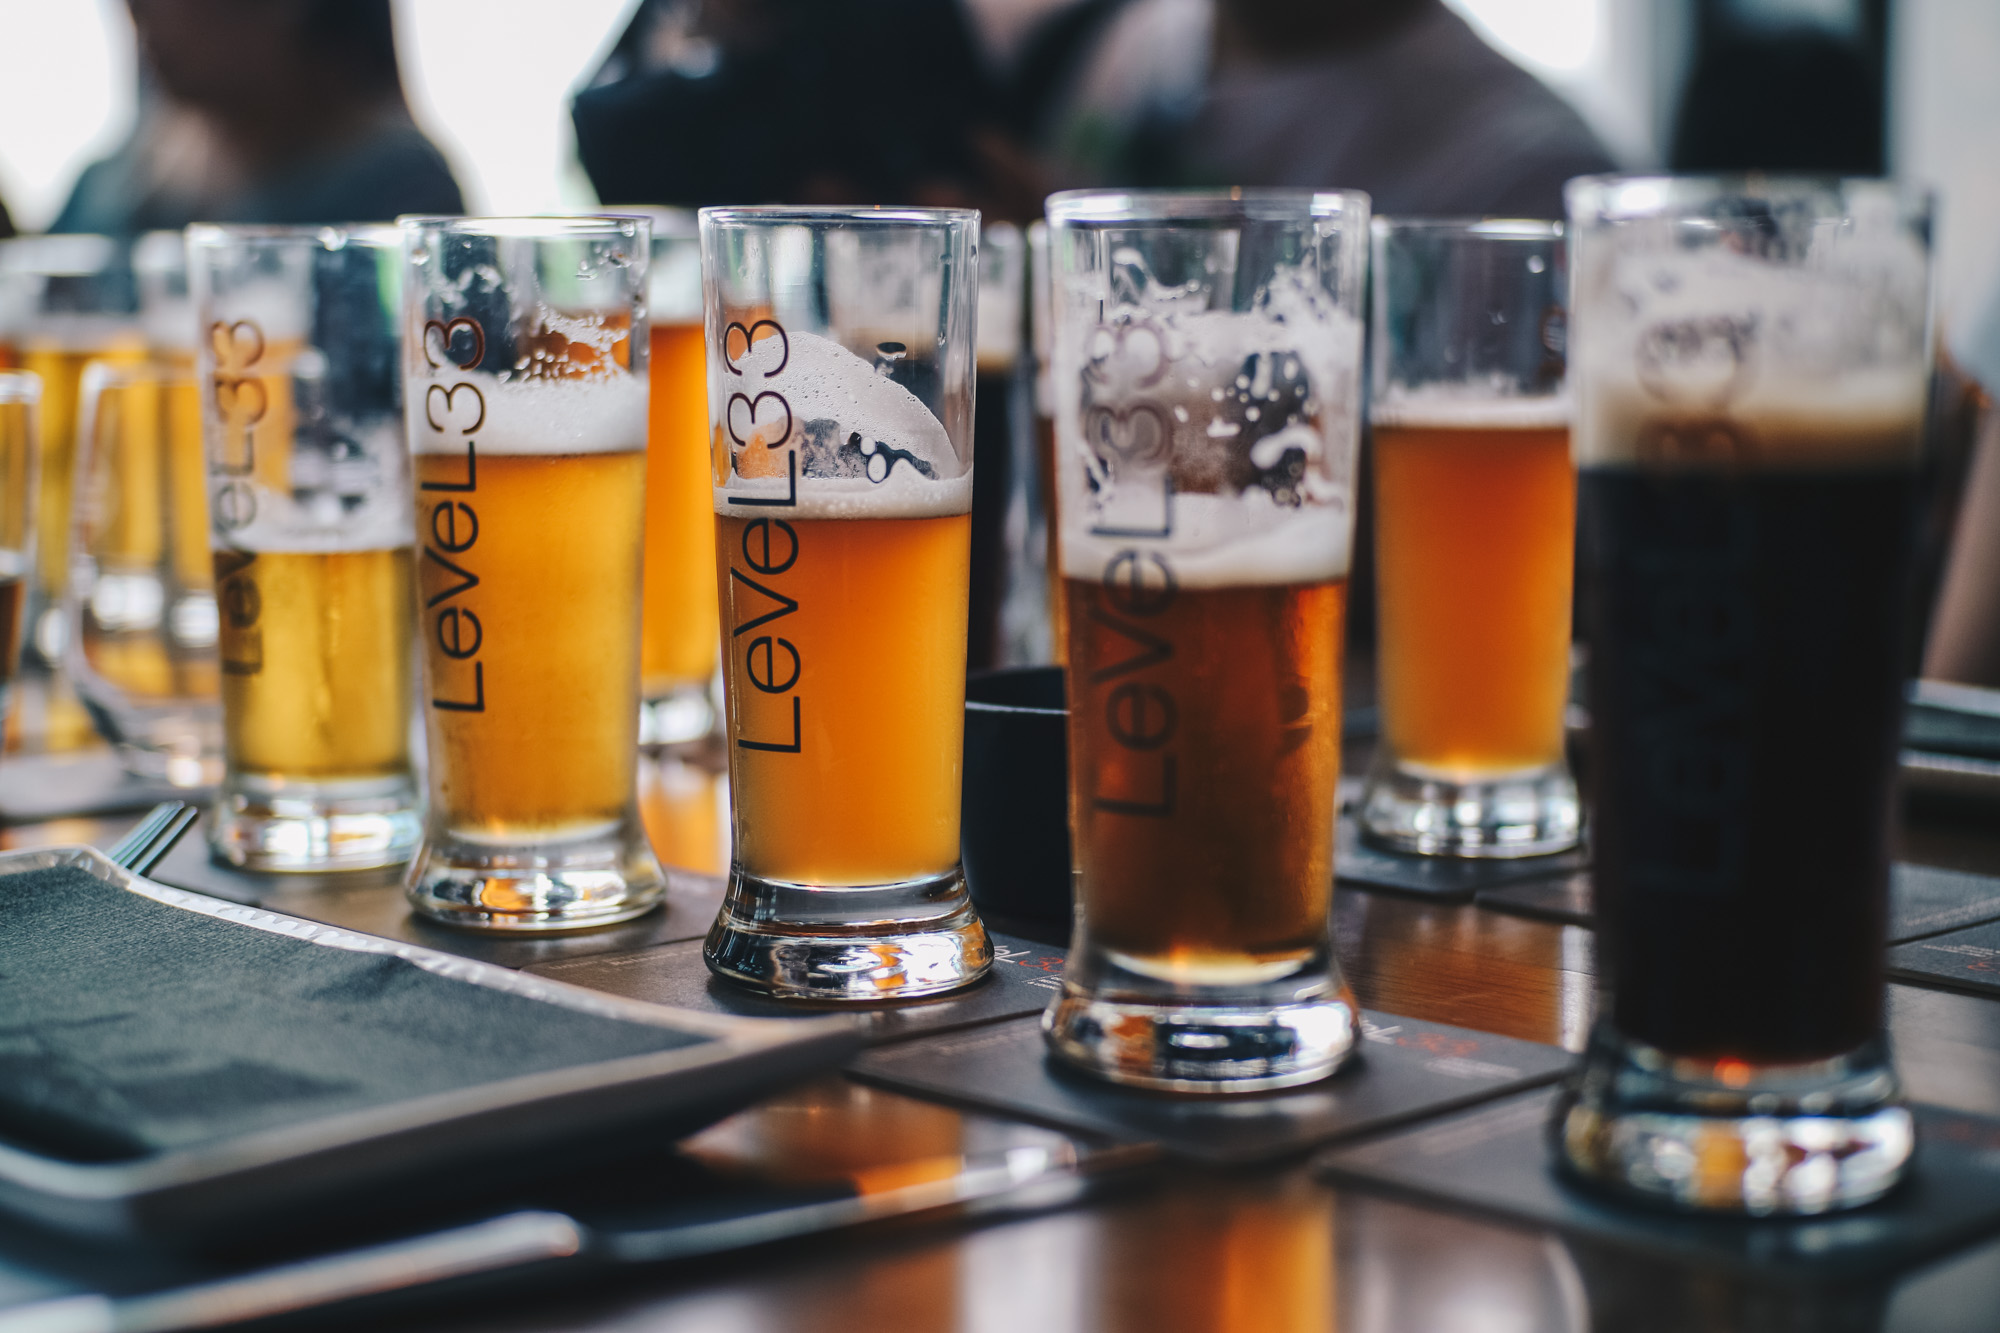 Experience The Craft Beer Scene With LeVeL33's Brewery Tour